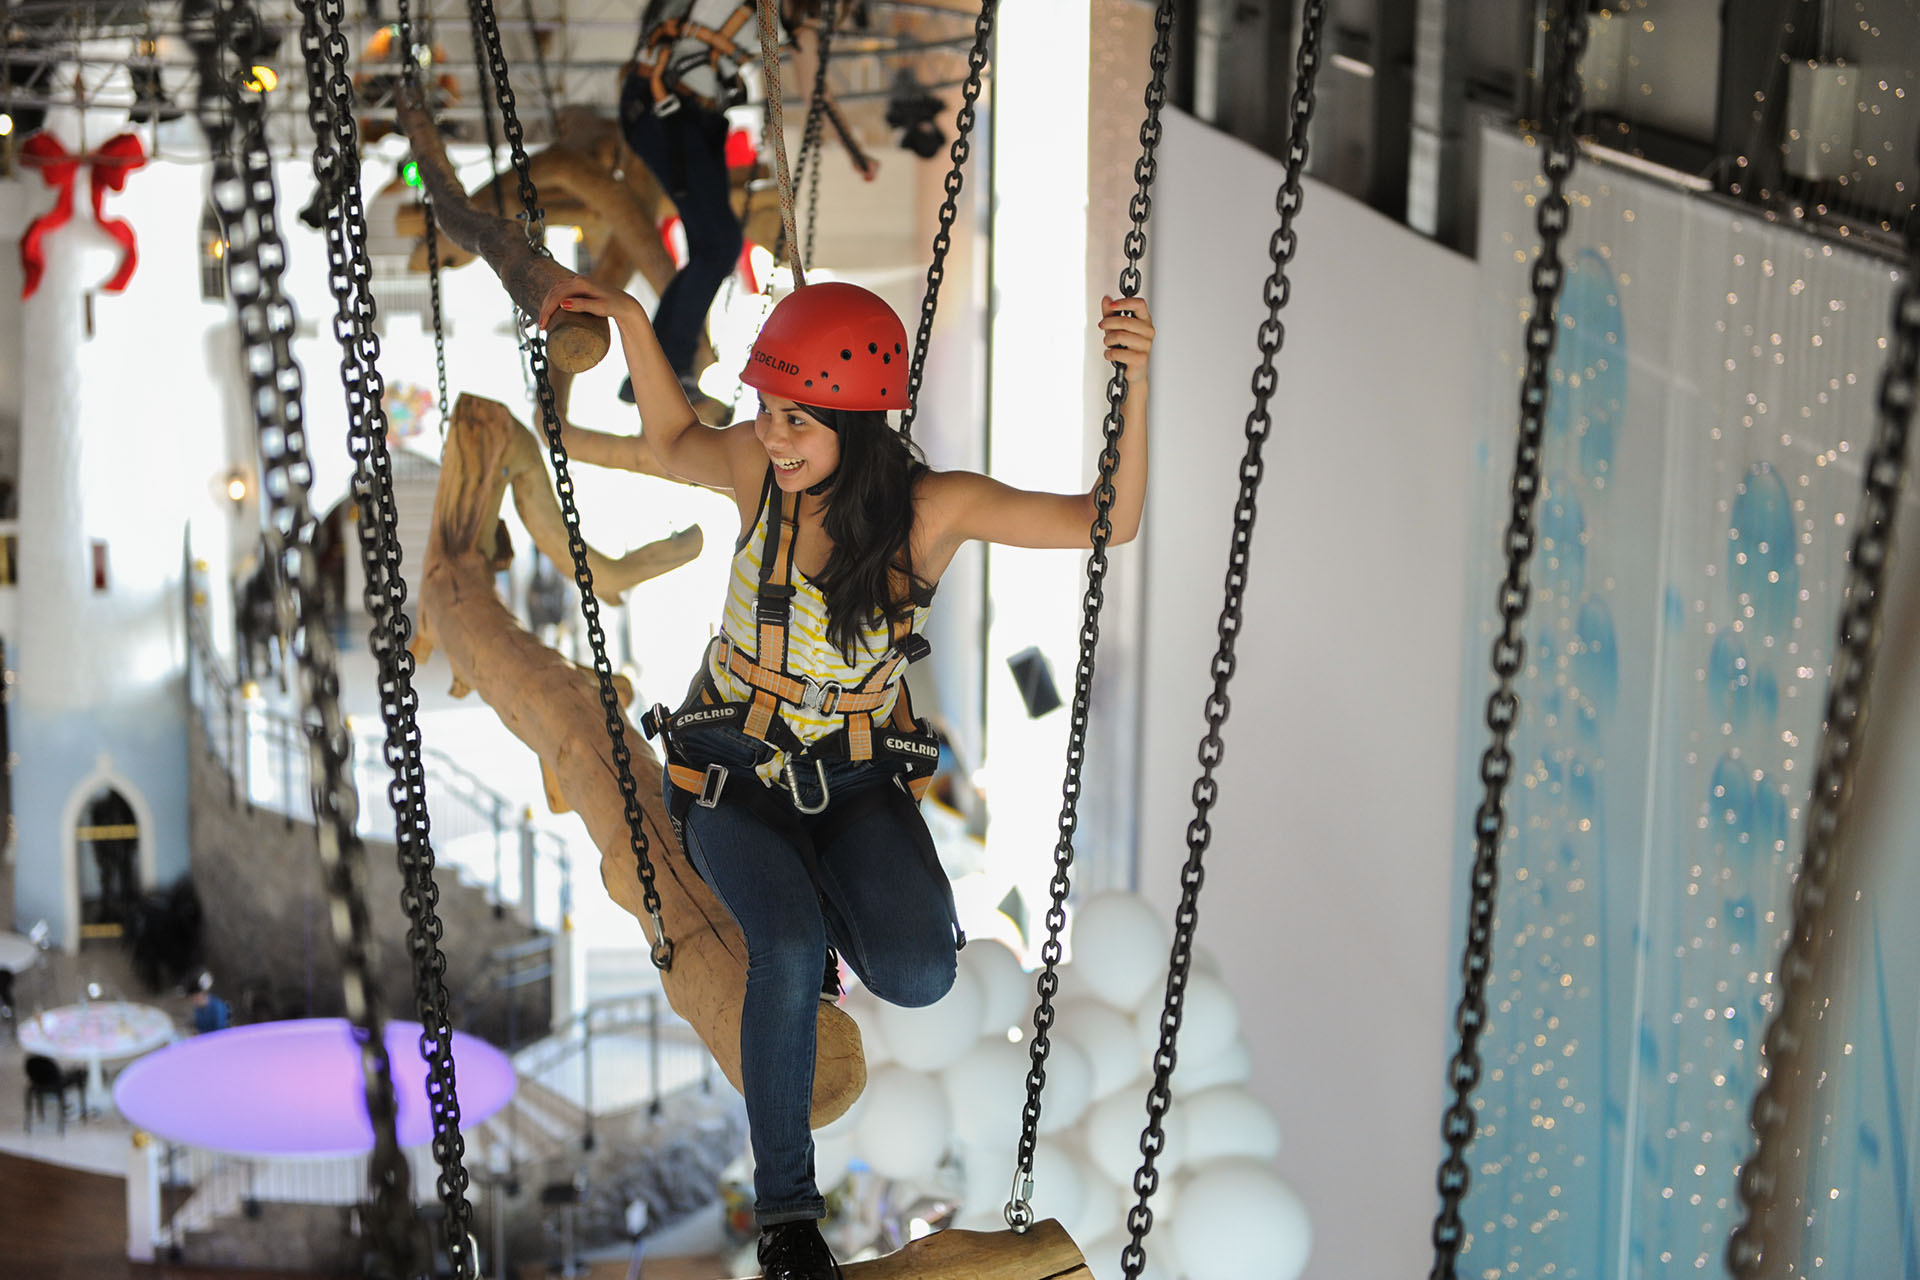 High Ropes Course Sensapolis The Indoor Leisure Park